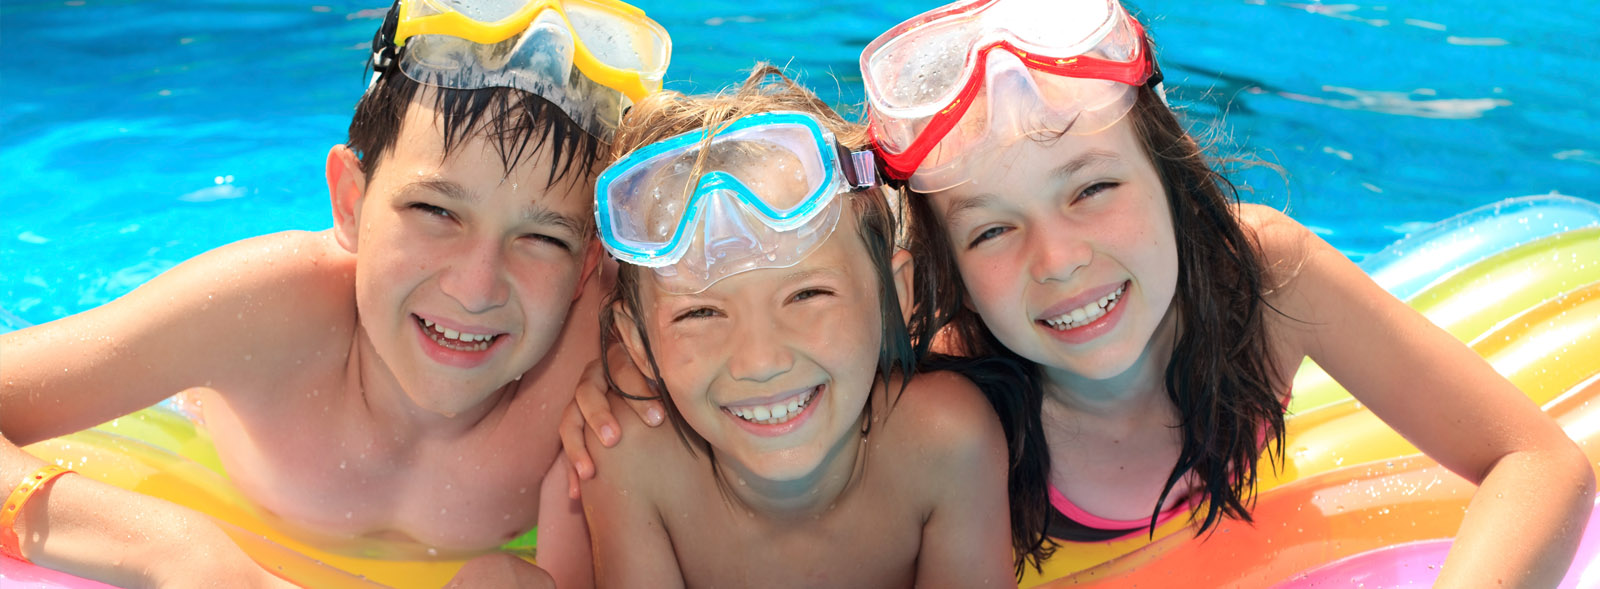 swimming pool pumps and filters suppliers atlantic seaboard and southern suburbs cape town